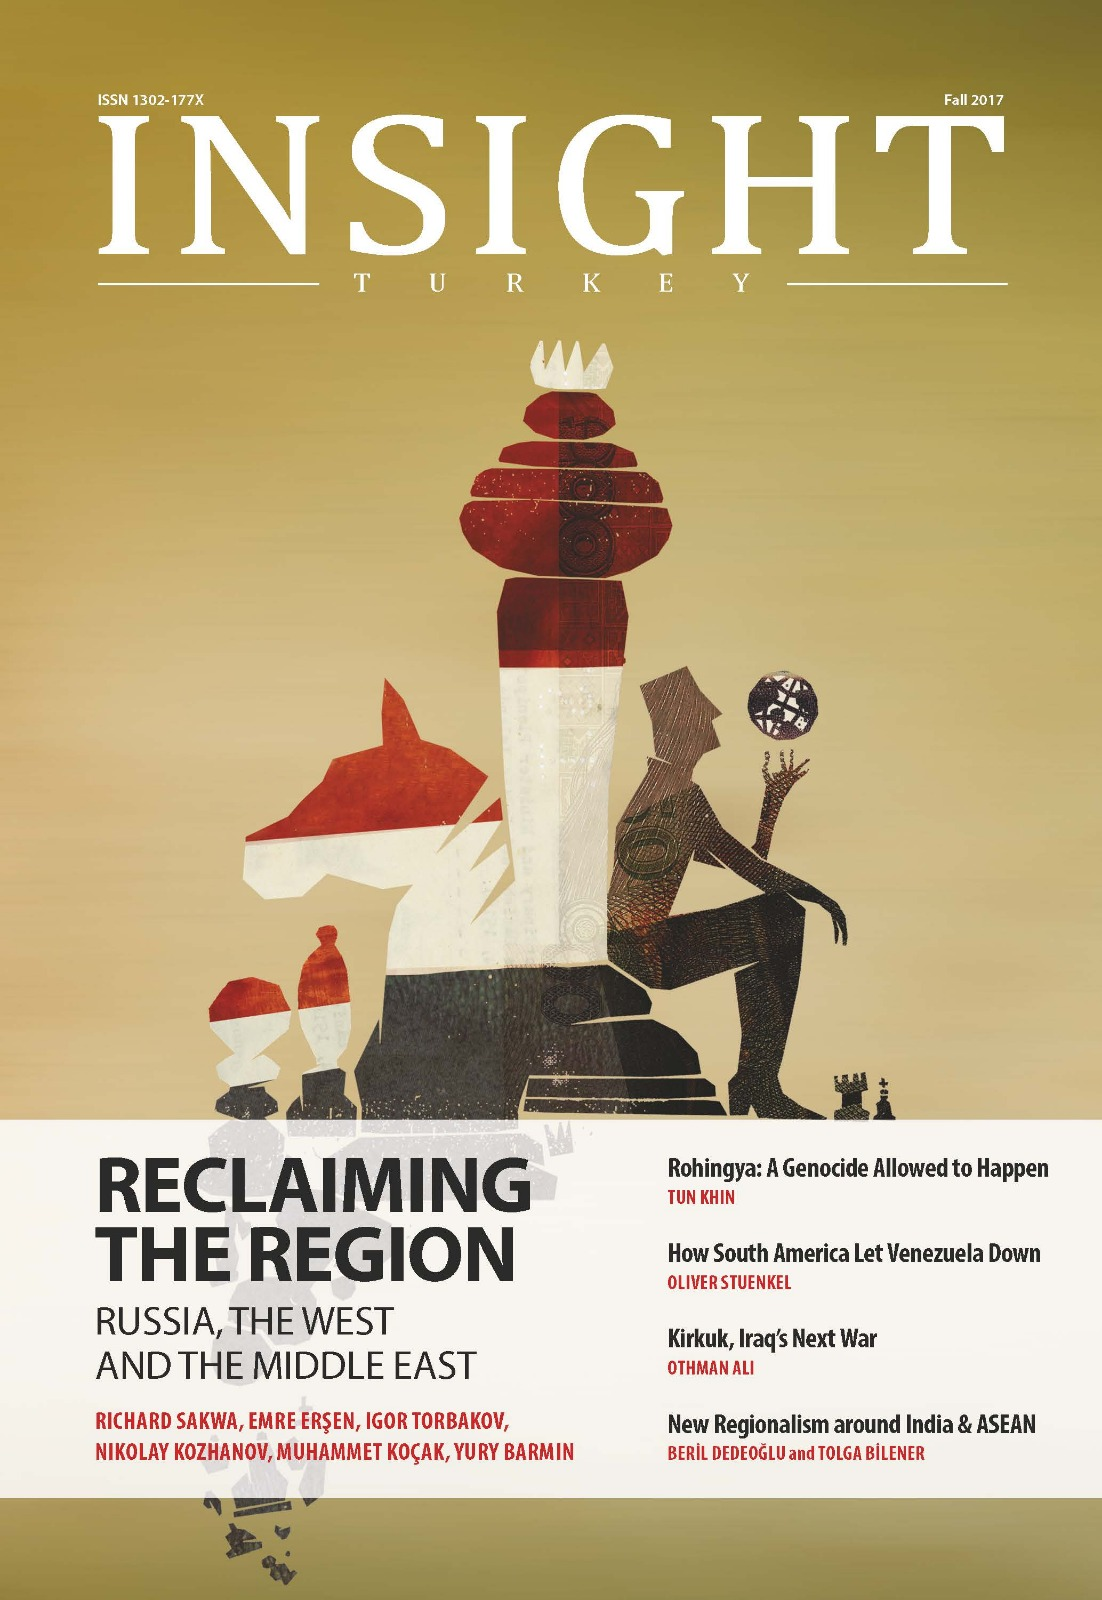 Reclaiming the Region Russia the West and the Middle East